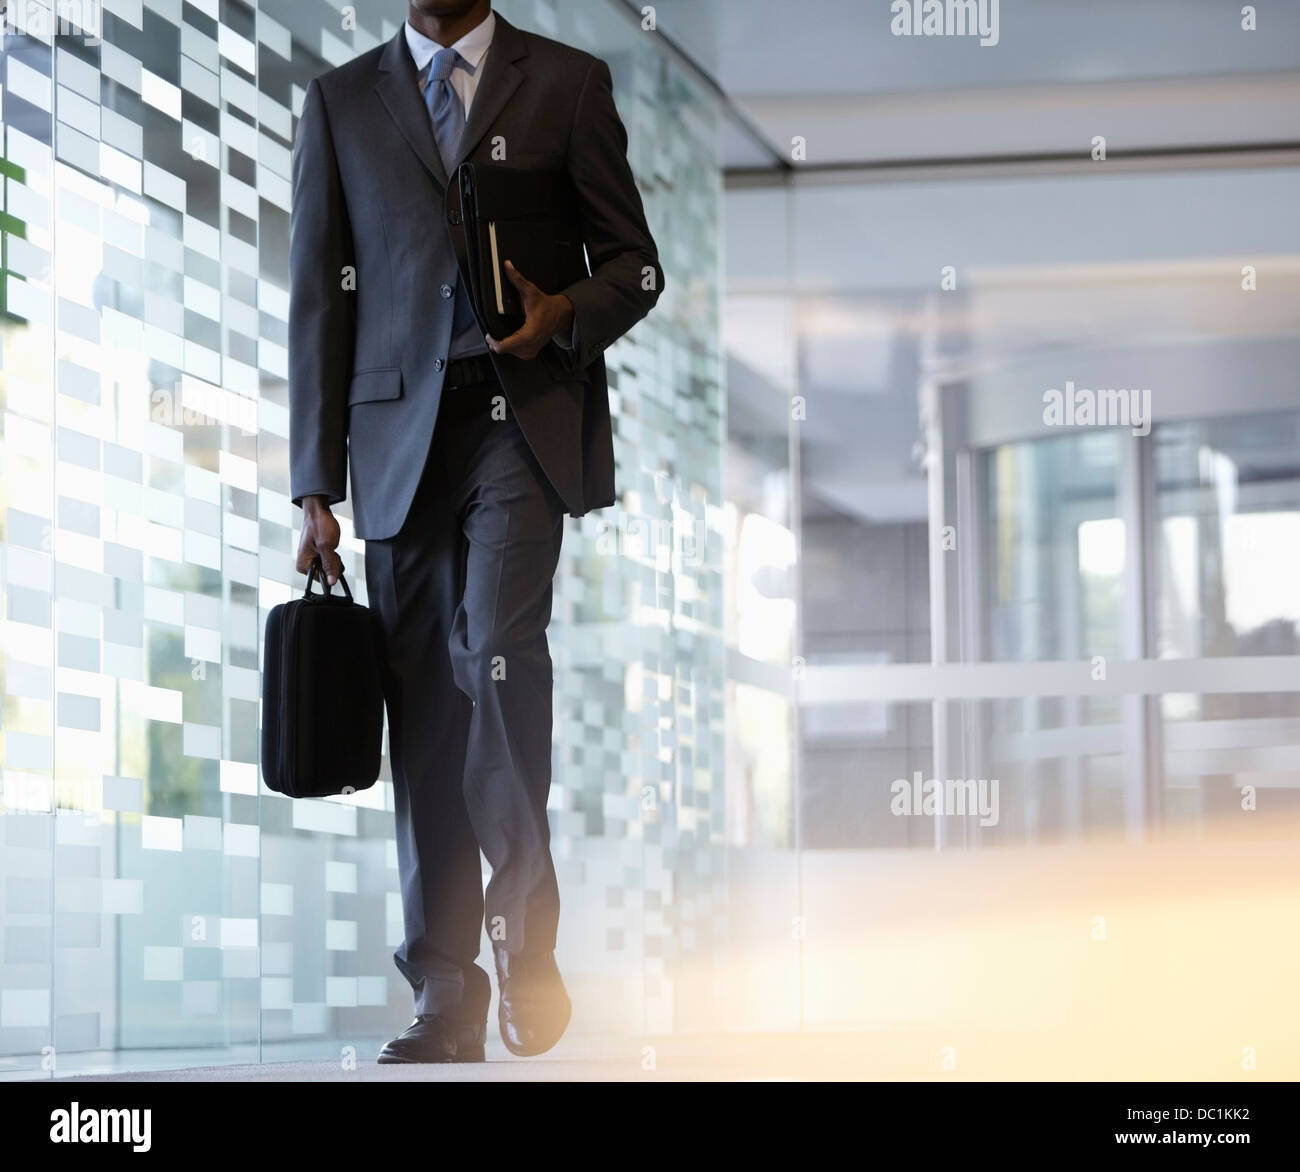 Businessman carrying briefcase in lobby - Stock Image